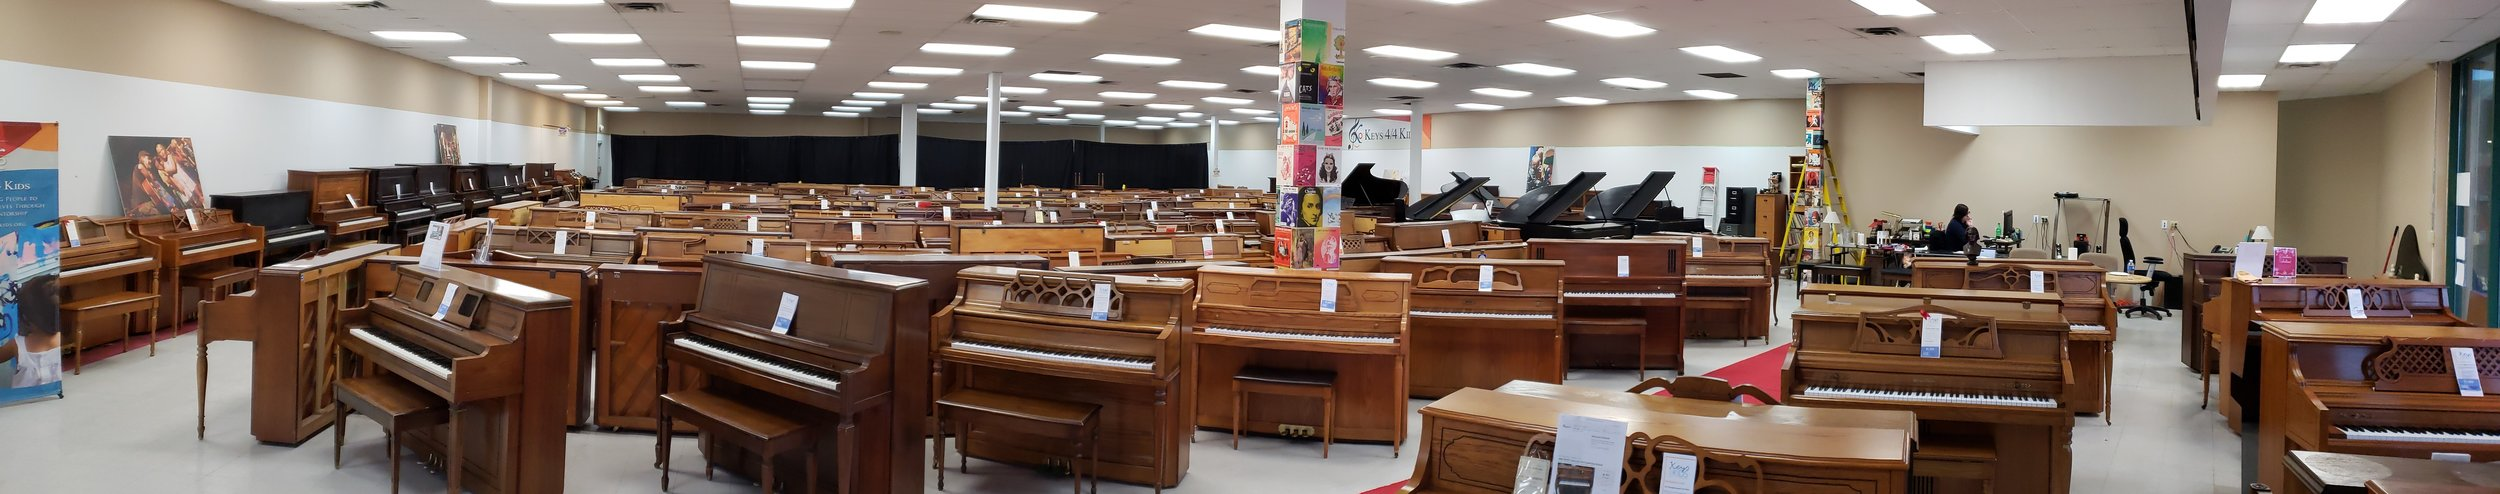 Keys 4/4 Kids | Upright & Grand Pianos for Sale